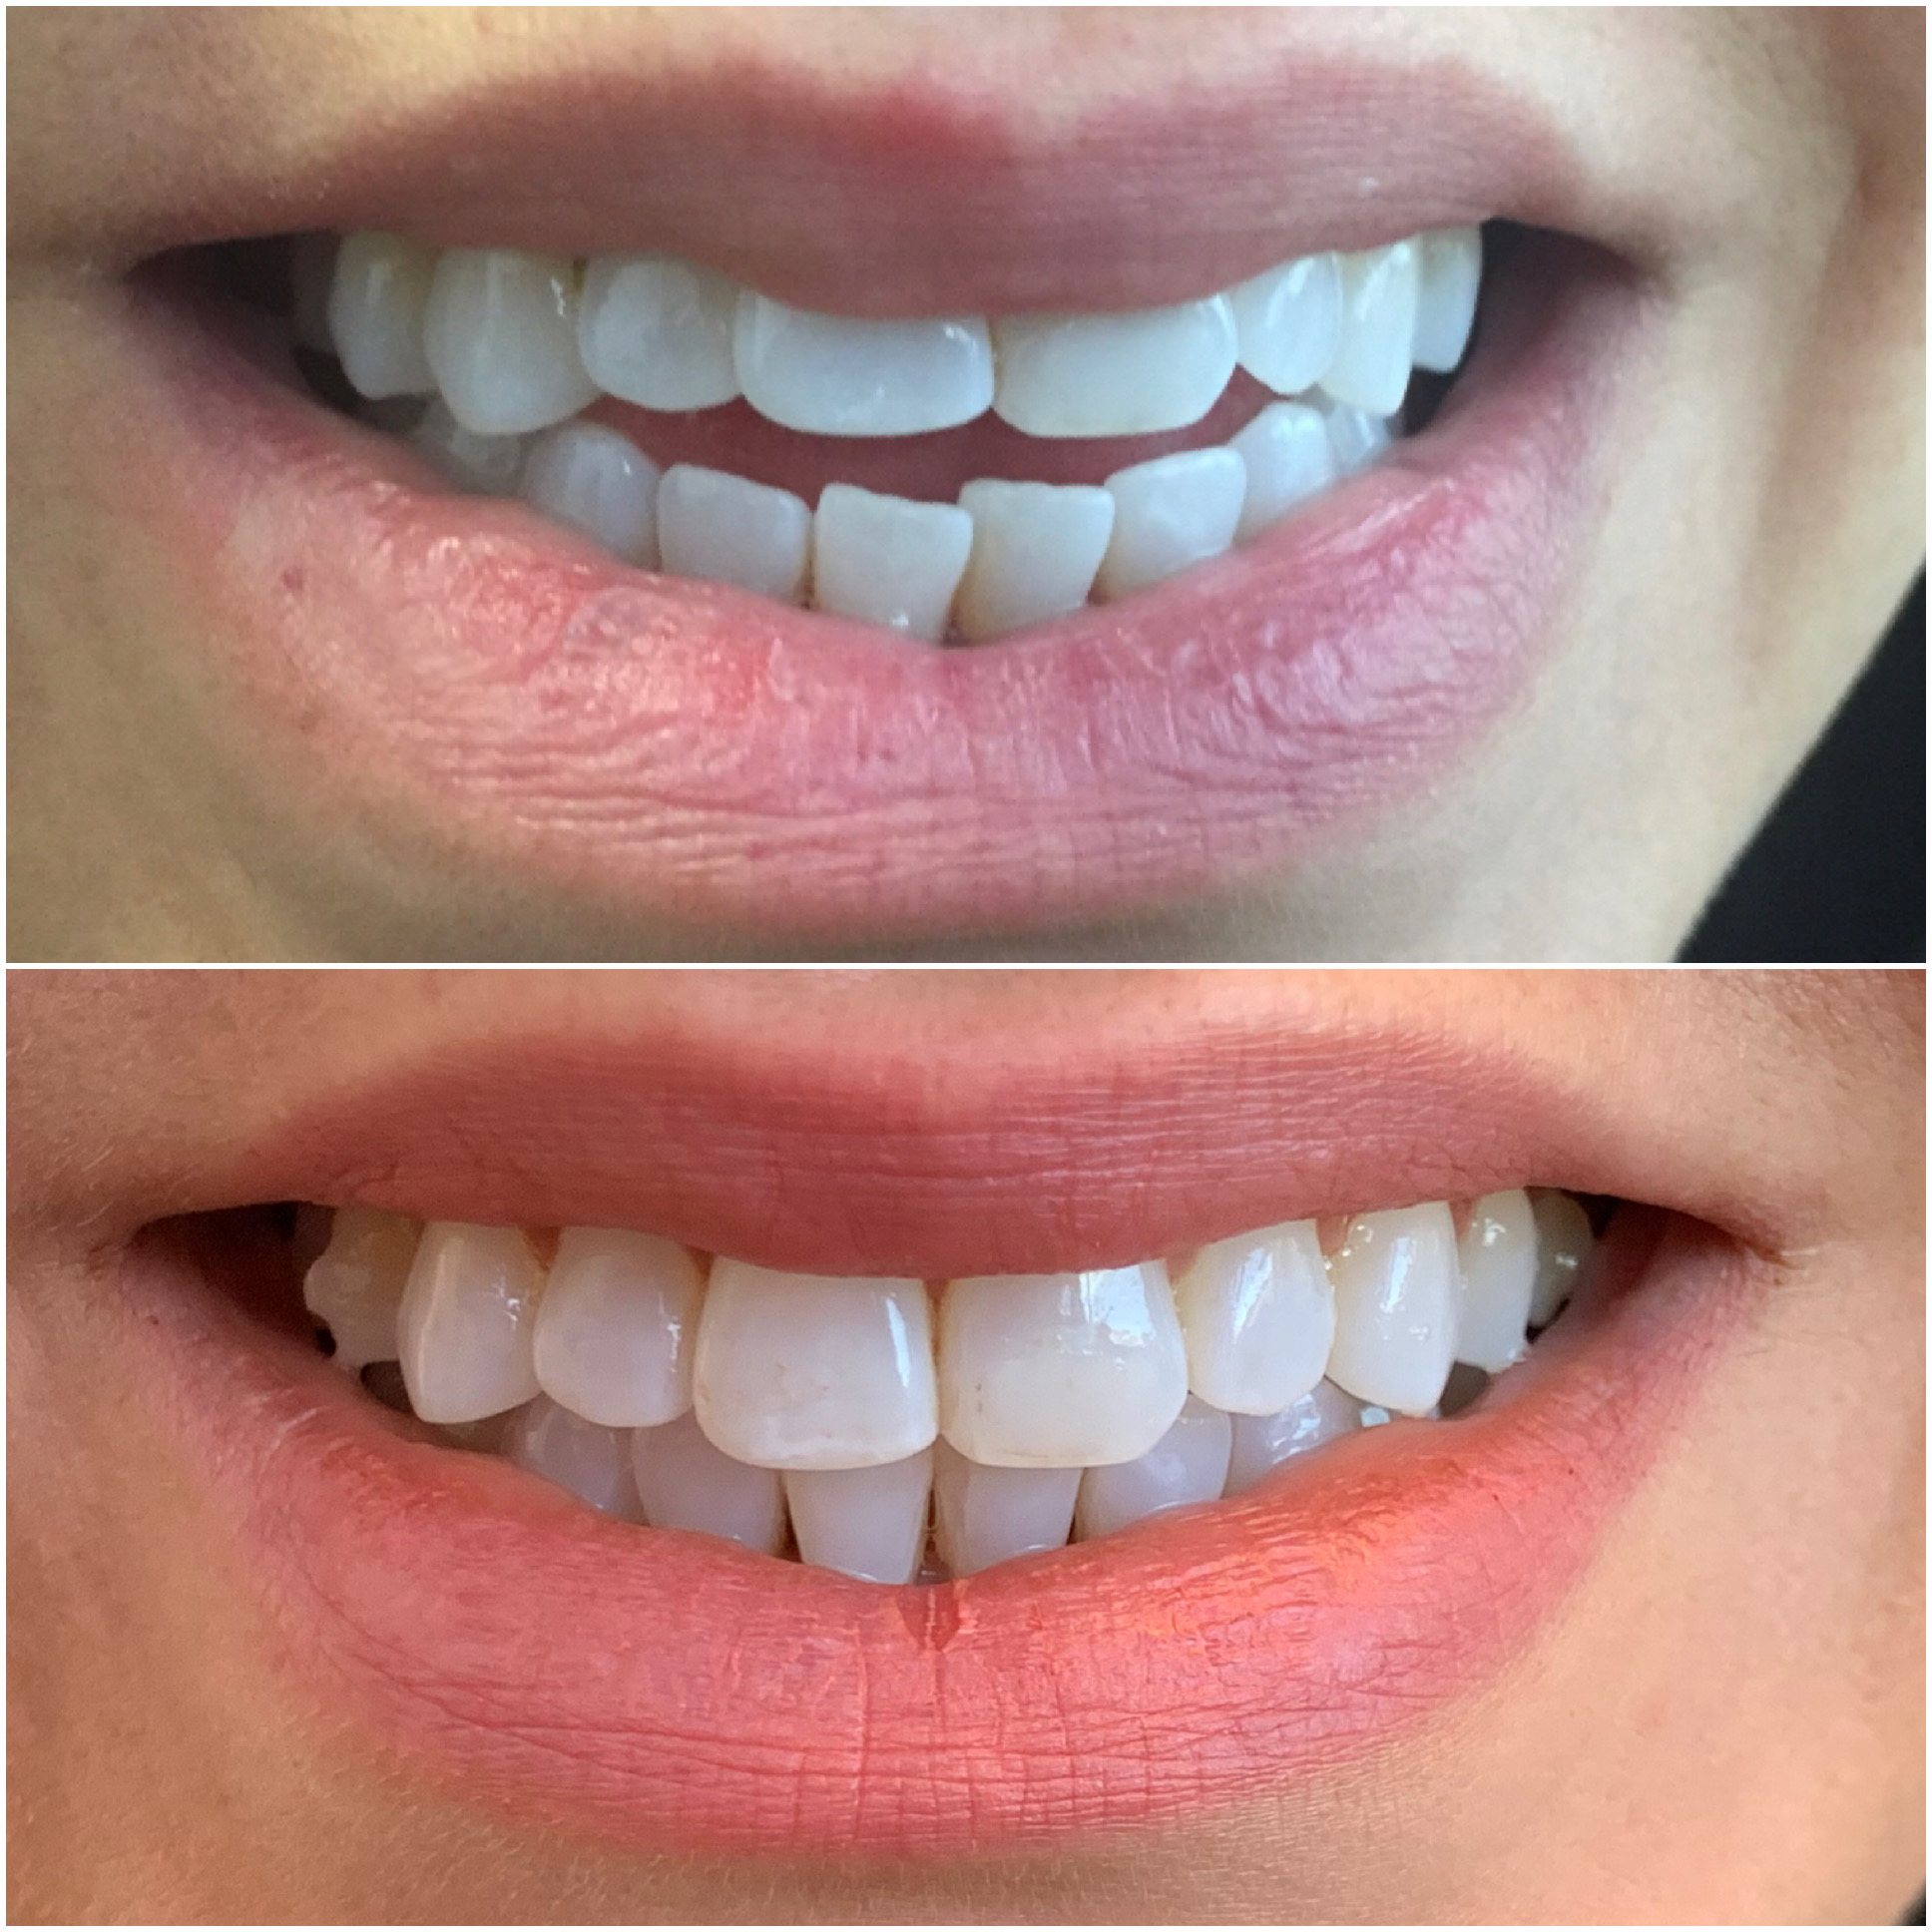 Invisalign used to close an open bite.